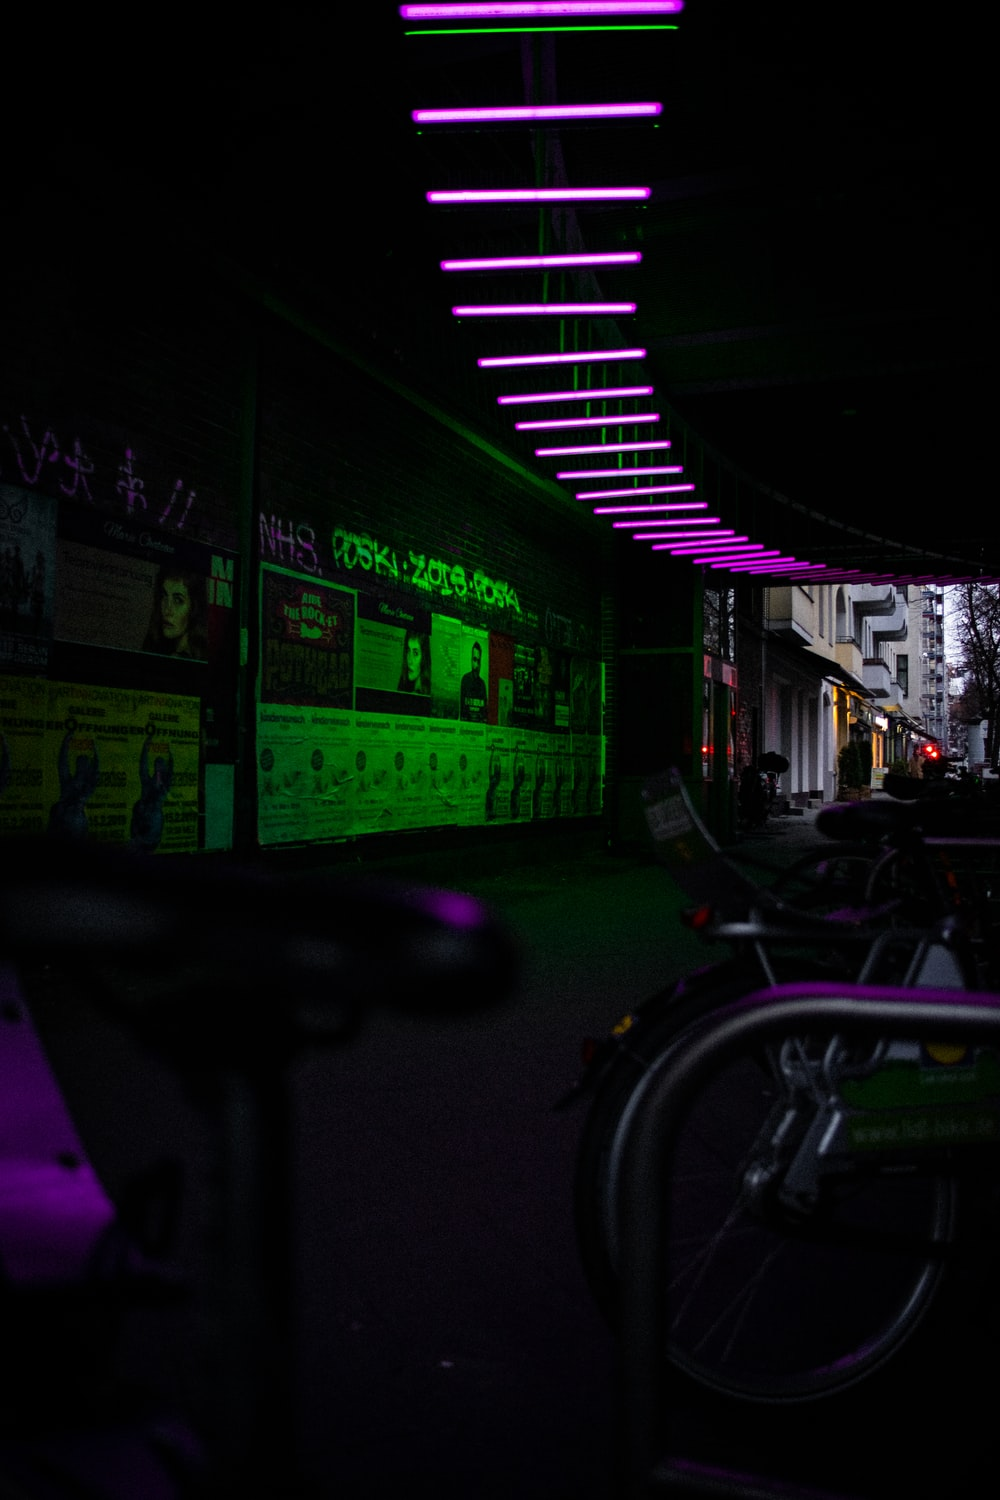 dim lighted room with green and purple lights